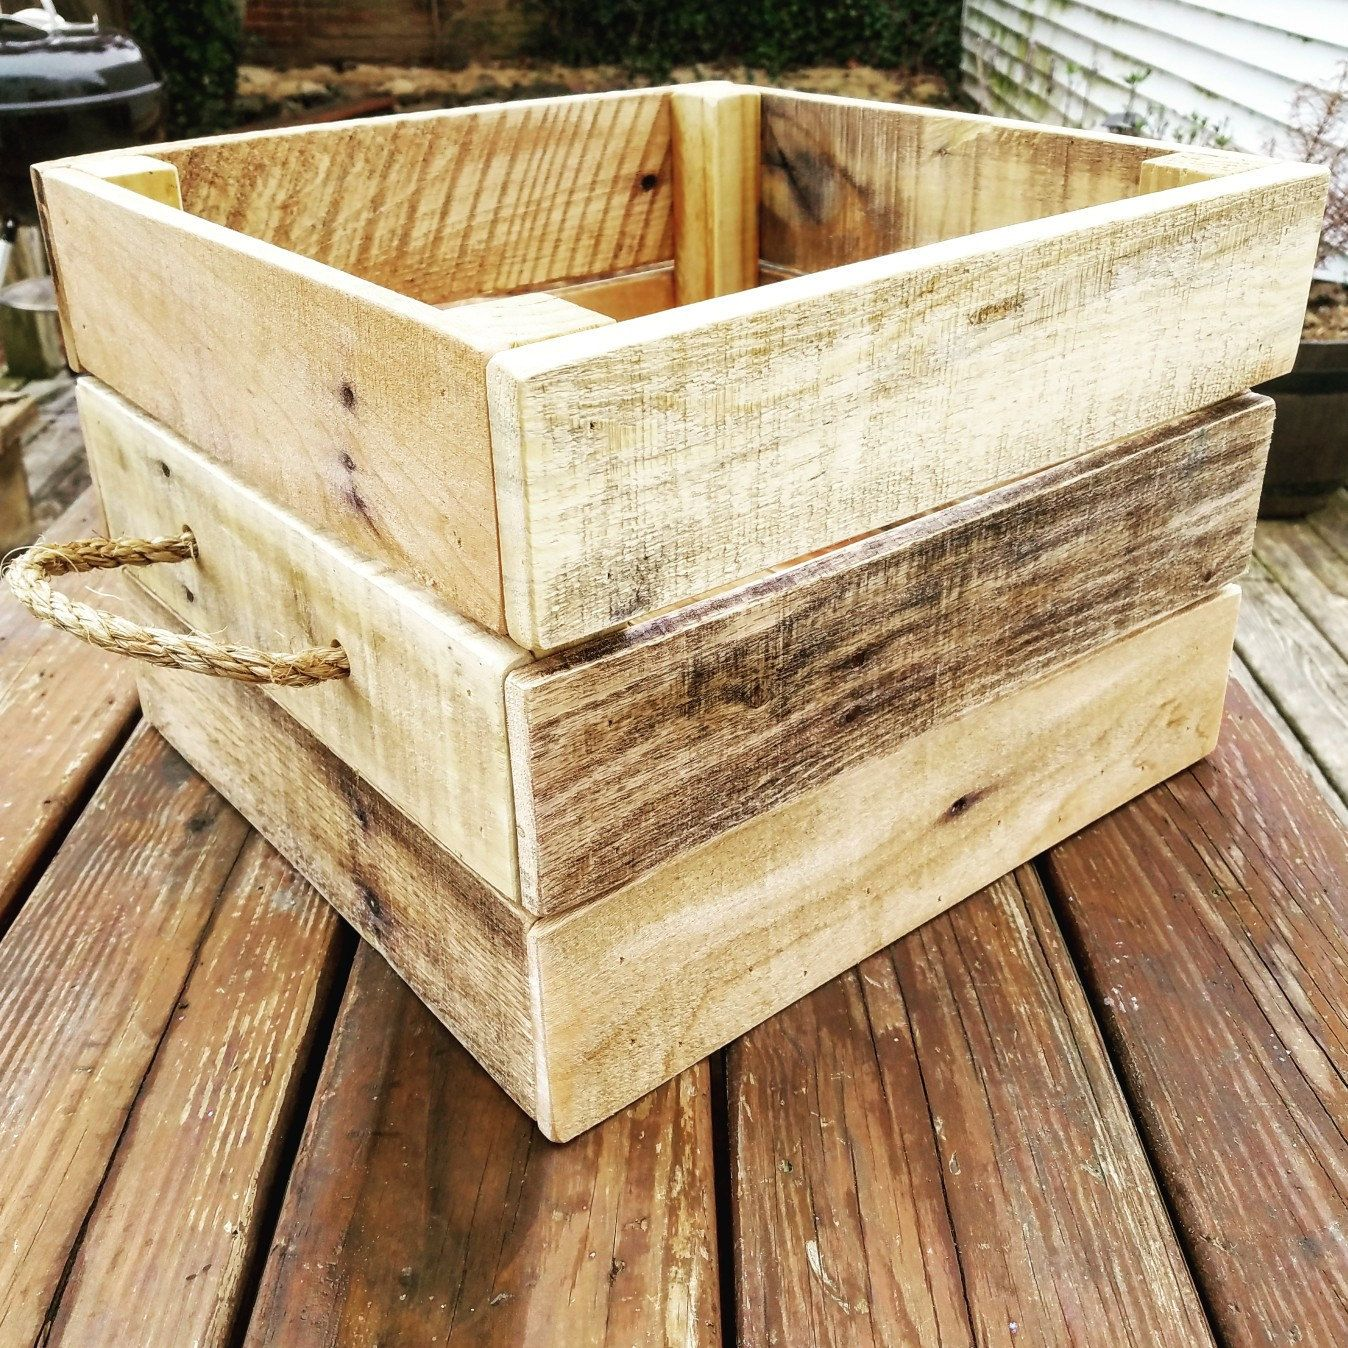 Rustic Wooden Pallet Bin Toy Box Dog Toy Crate Storage Basket Salvaged Wood Projects Diy Wooden Crate Wooden Box Diy